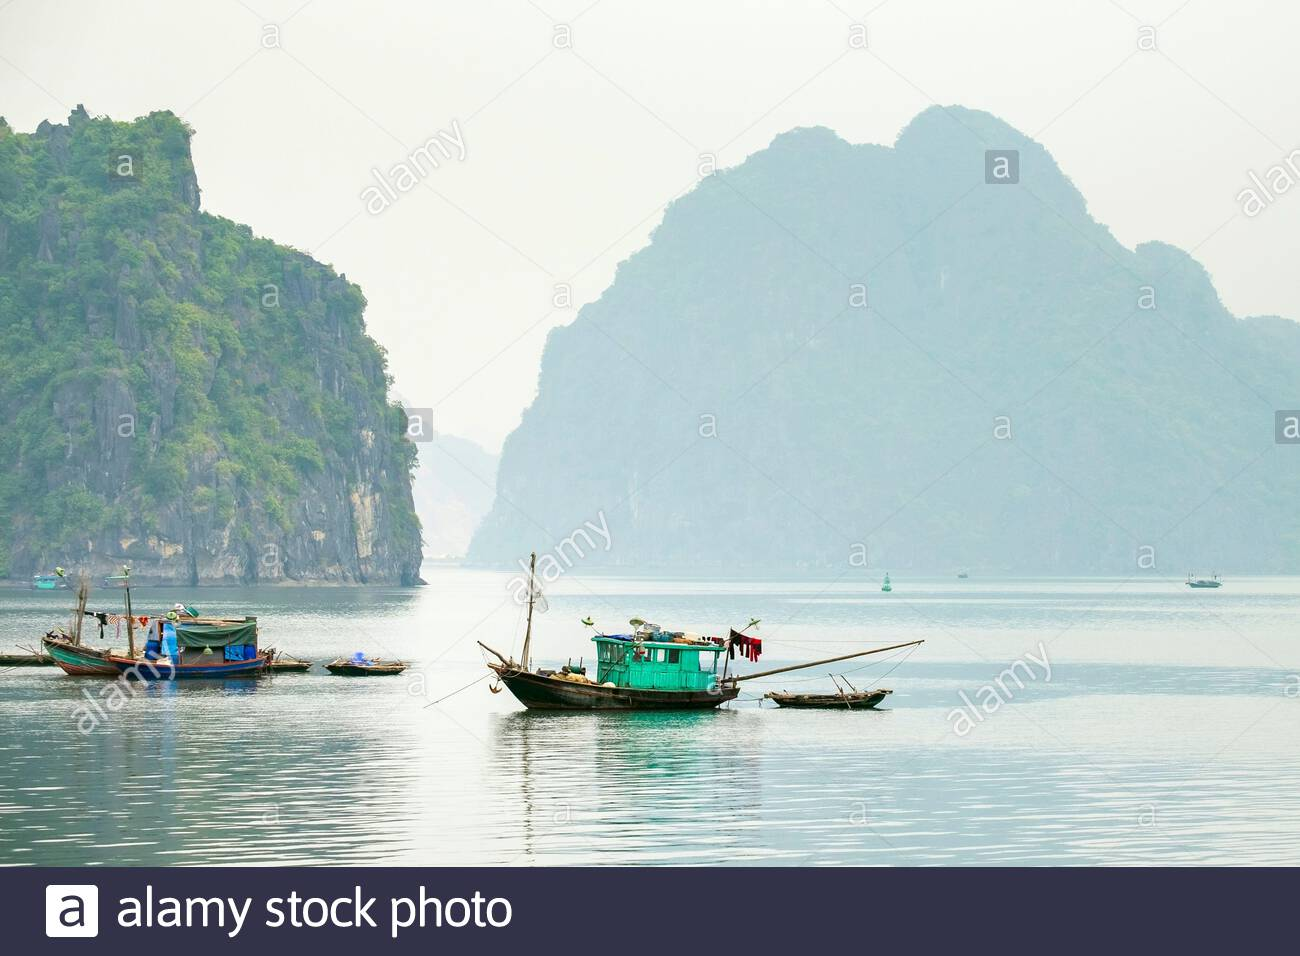 Boats in Ha Long bay on a foggy morning, Quang Ninh Province, Vietnam Stock Photo